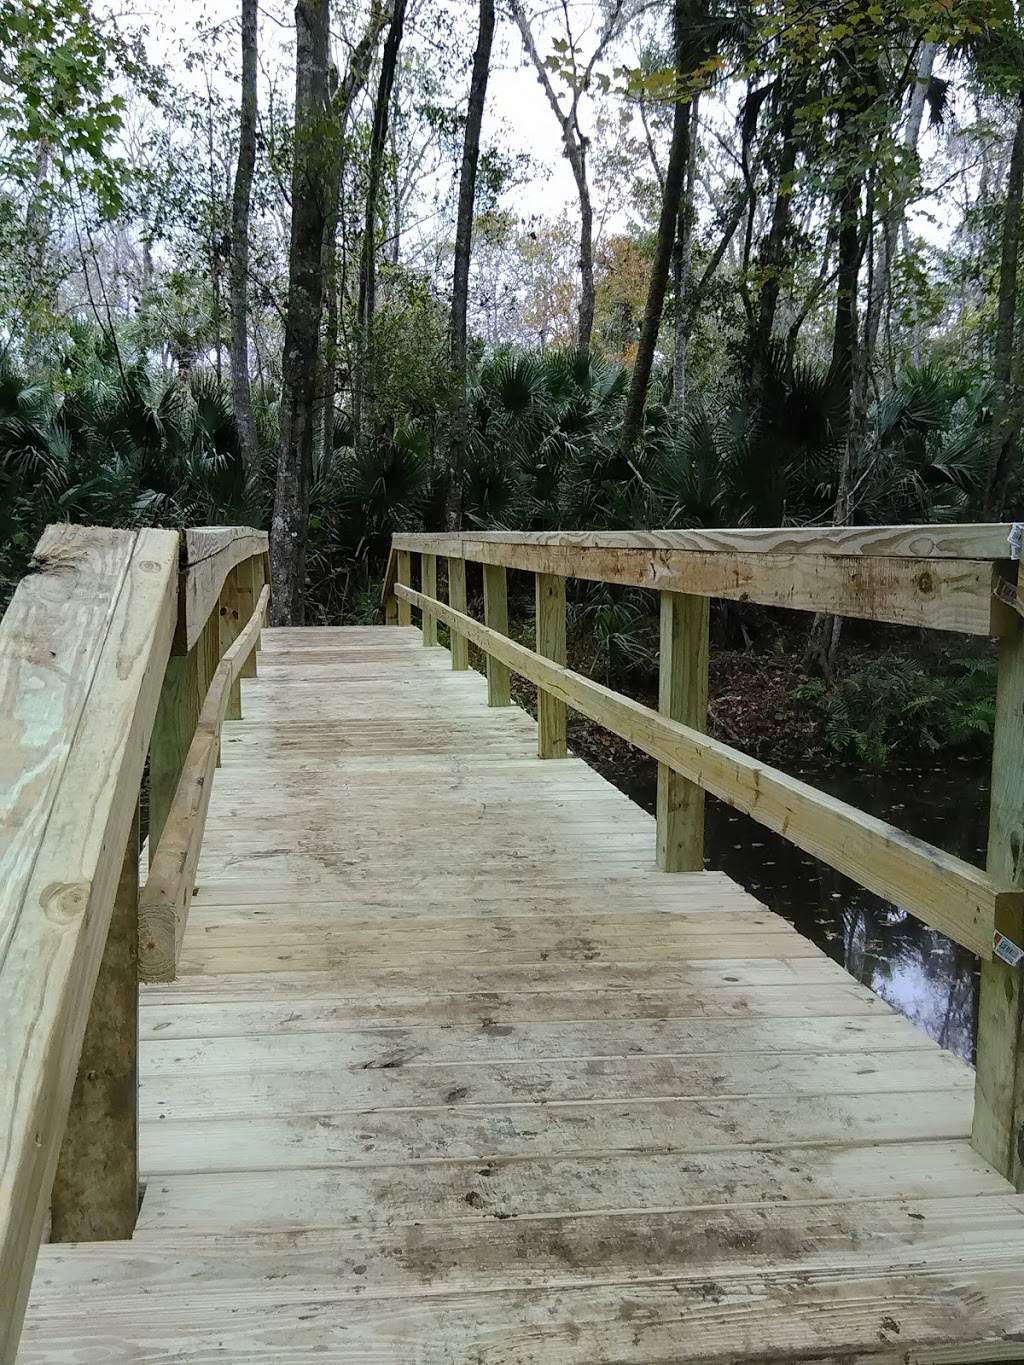 Affordable outdoor solutions LLC - general contractor    Photo 3 of 10   Address: 2600 Gowen St, Orlando, FL 32806, USA   Phone: (321) 287-7310